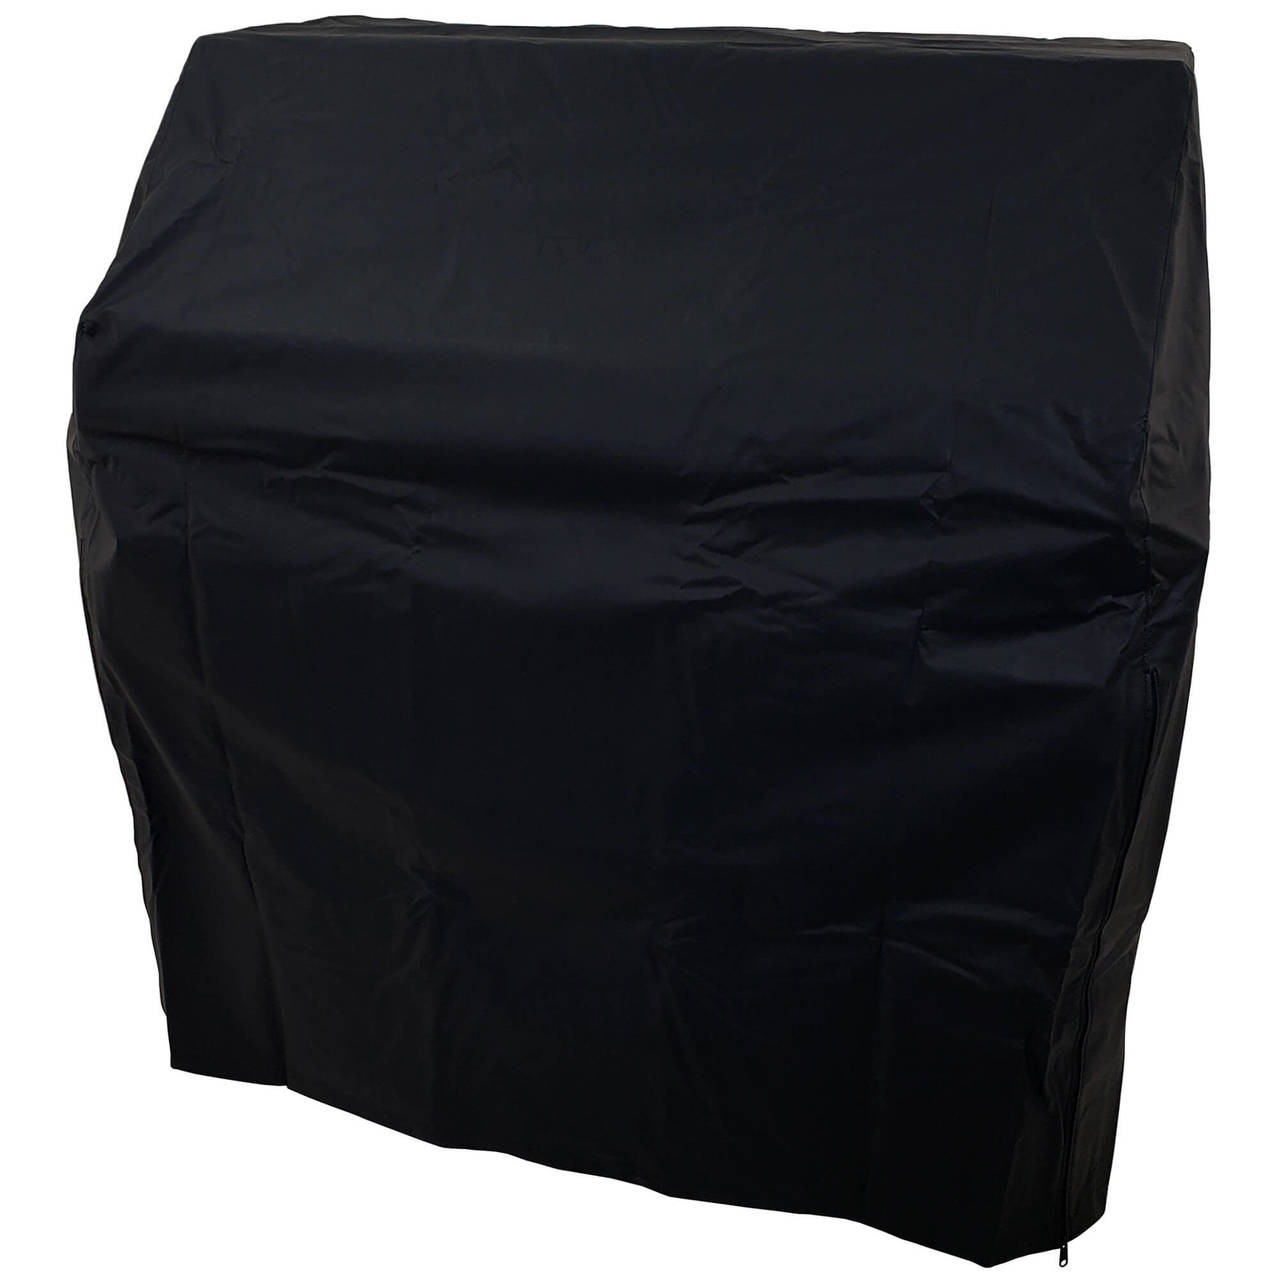 "Cover for 42"" Cart Grill, Item #SOL-HC-42C"